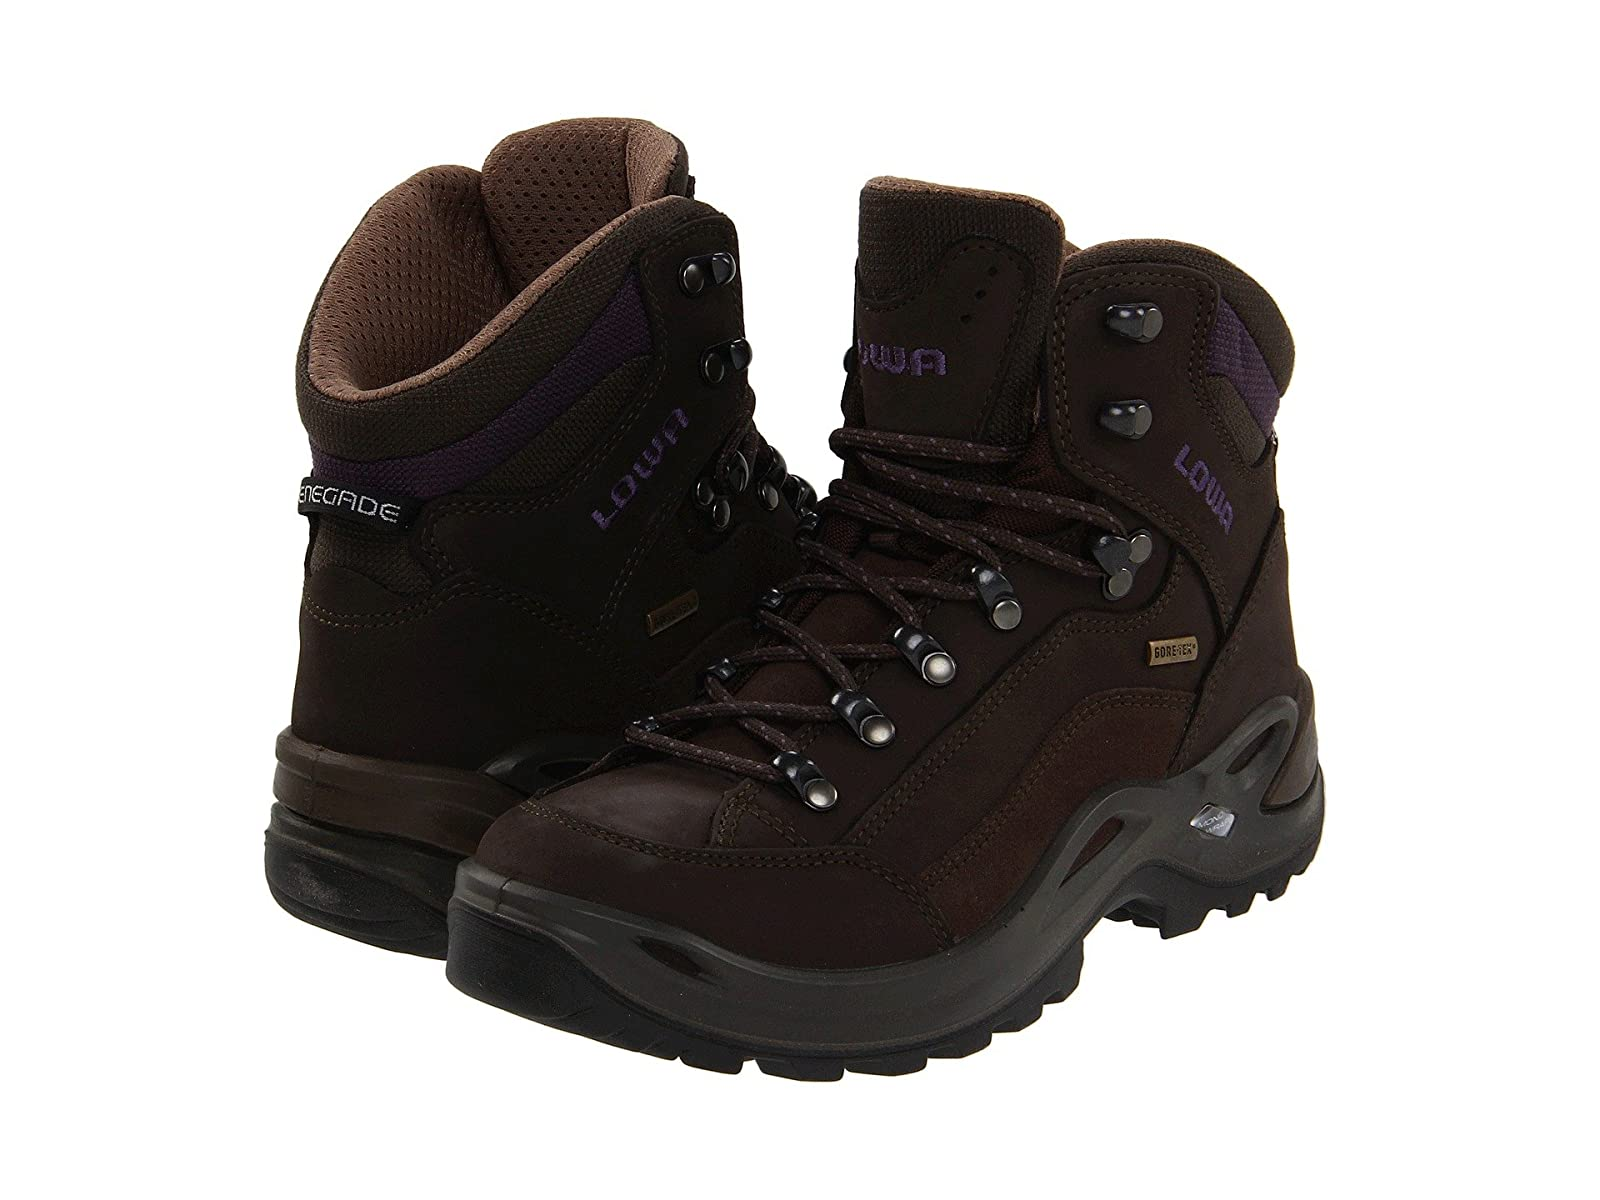 Lowa Renegade GTX Mid WSAffordable and distinctive shoes